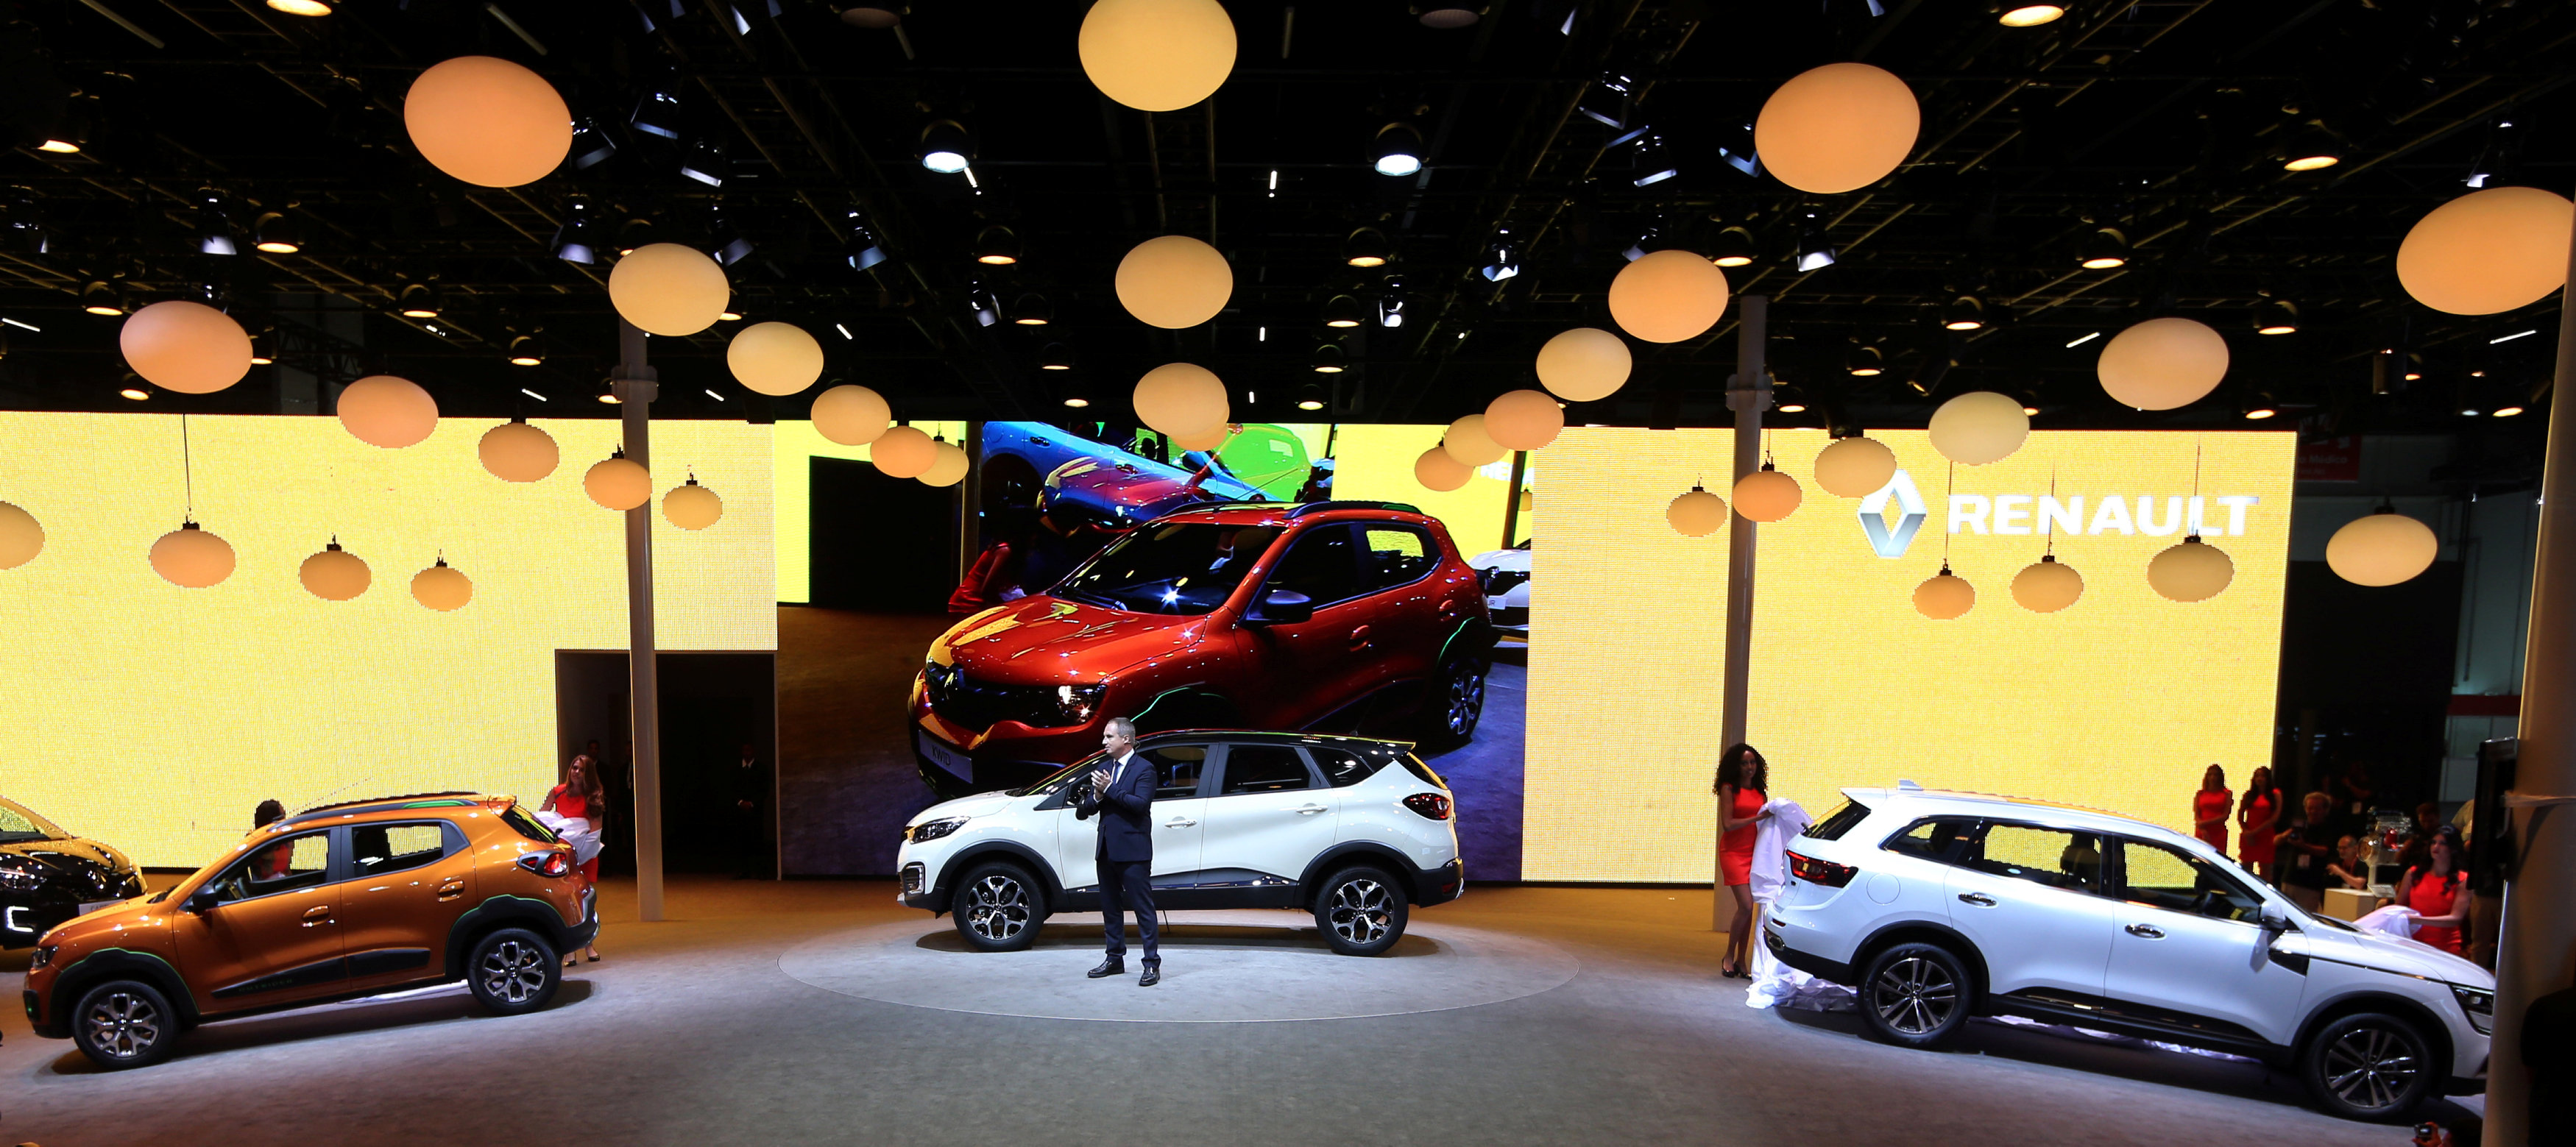 Fabrice Cambolive head of the local subsidiary of the French automaker Renault, presents the Captur, Kwid and Koleos models during the Sao Paulo International Motor Show in Sao Paulo